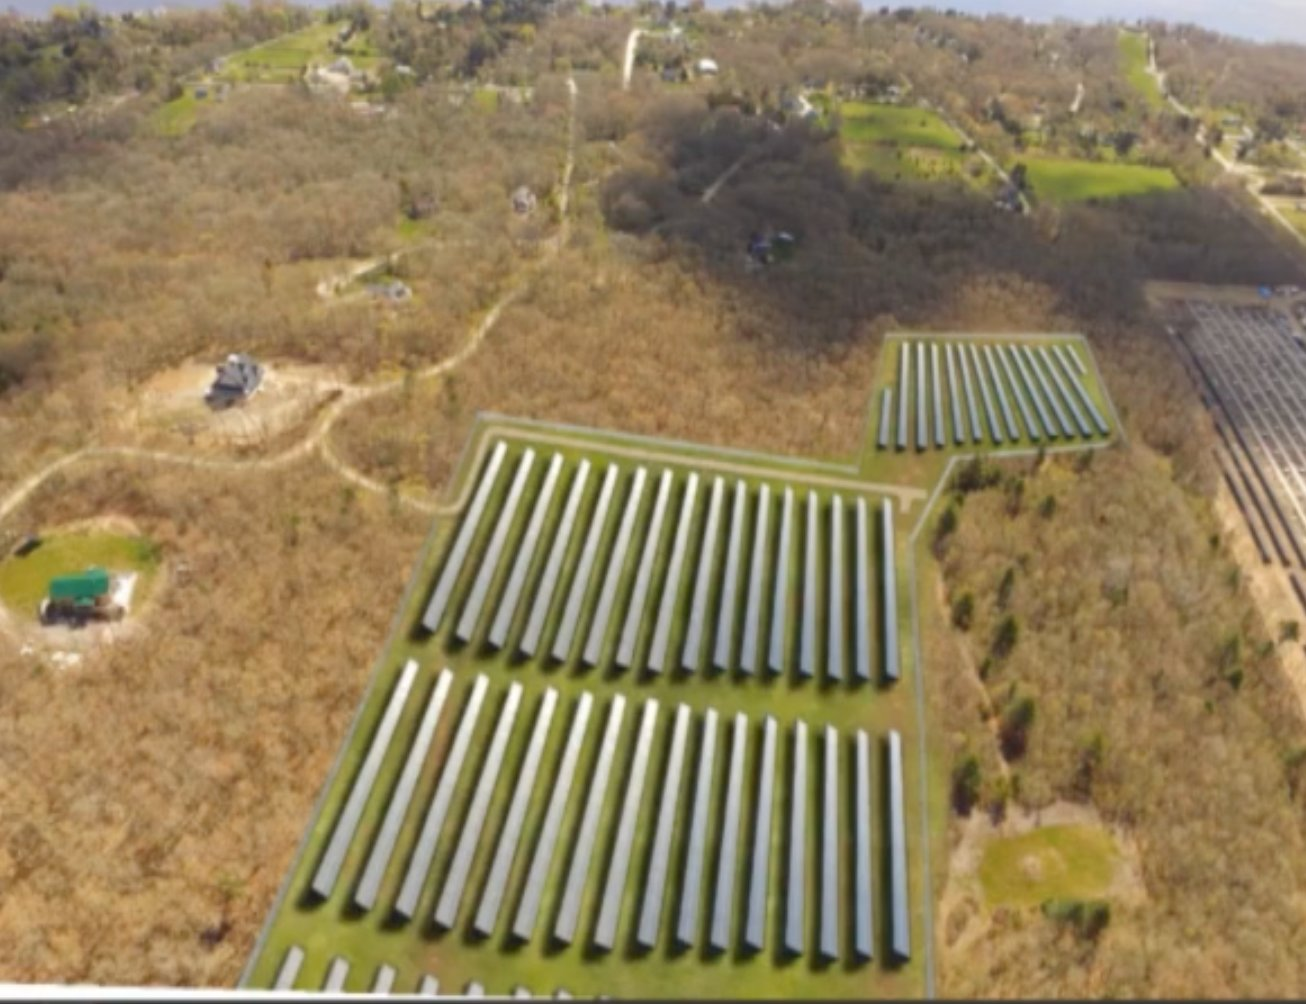 Developer's rendering shows solar panels on land between Drift Road and Route 88 along Soules' Way (an additional section is barely visible in the foreground).